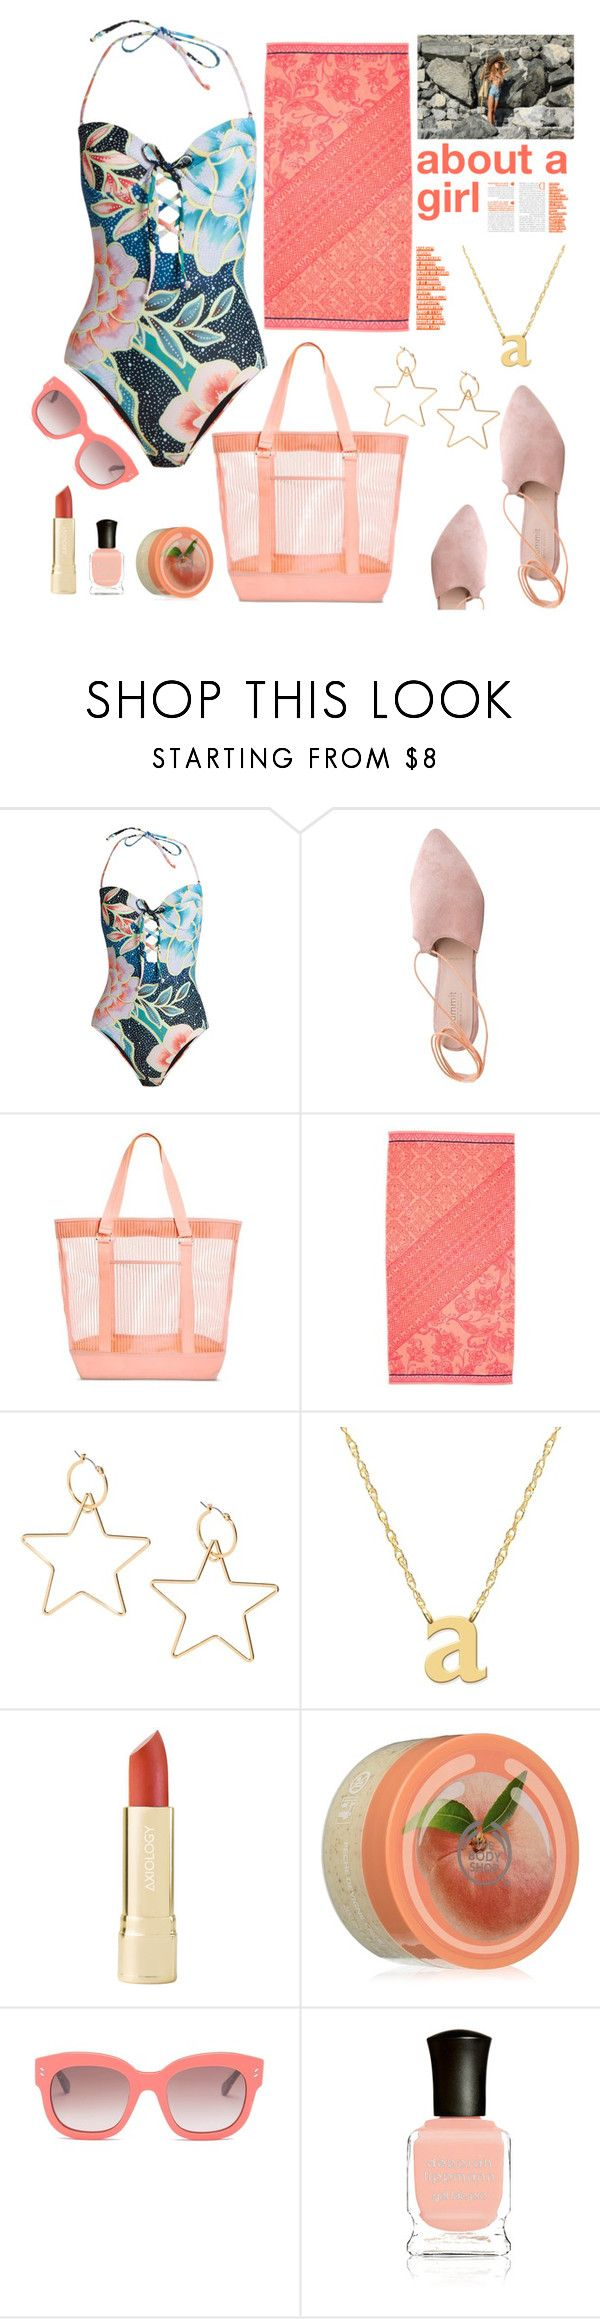 """about a girl"" by felicitysparks ❤ liked on Polyvore featuring Mara Hoffman, Summit, Jane Basch, The Body Shop, STELLA McCARTNEY and Deborah Lippmann"